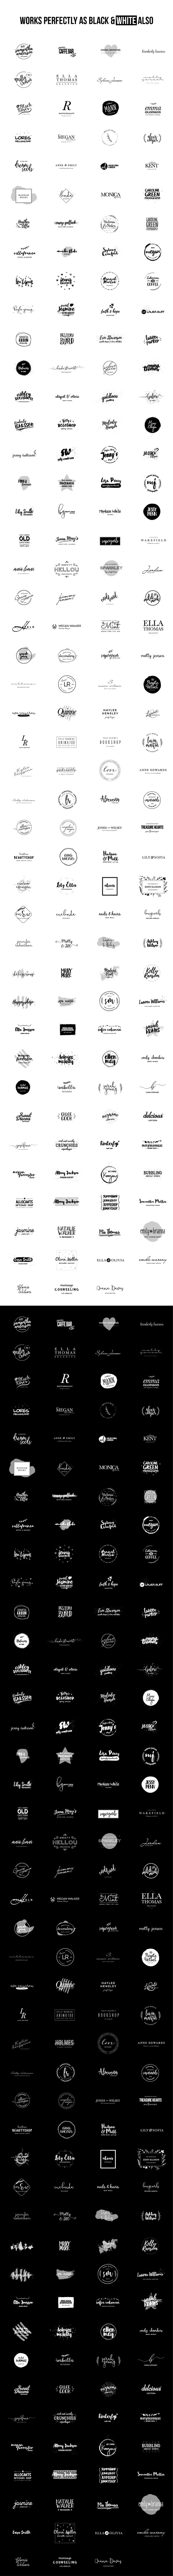 The Humongous Girlpreneurs Logo Pack by Worn Out Media Co. on @creativemarket